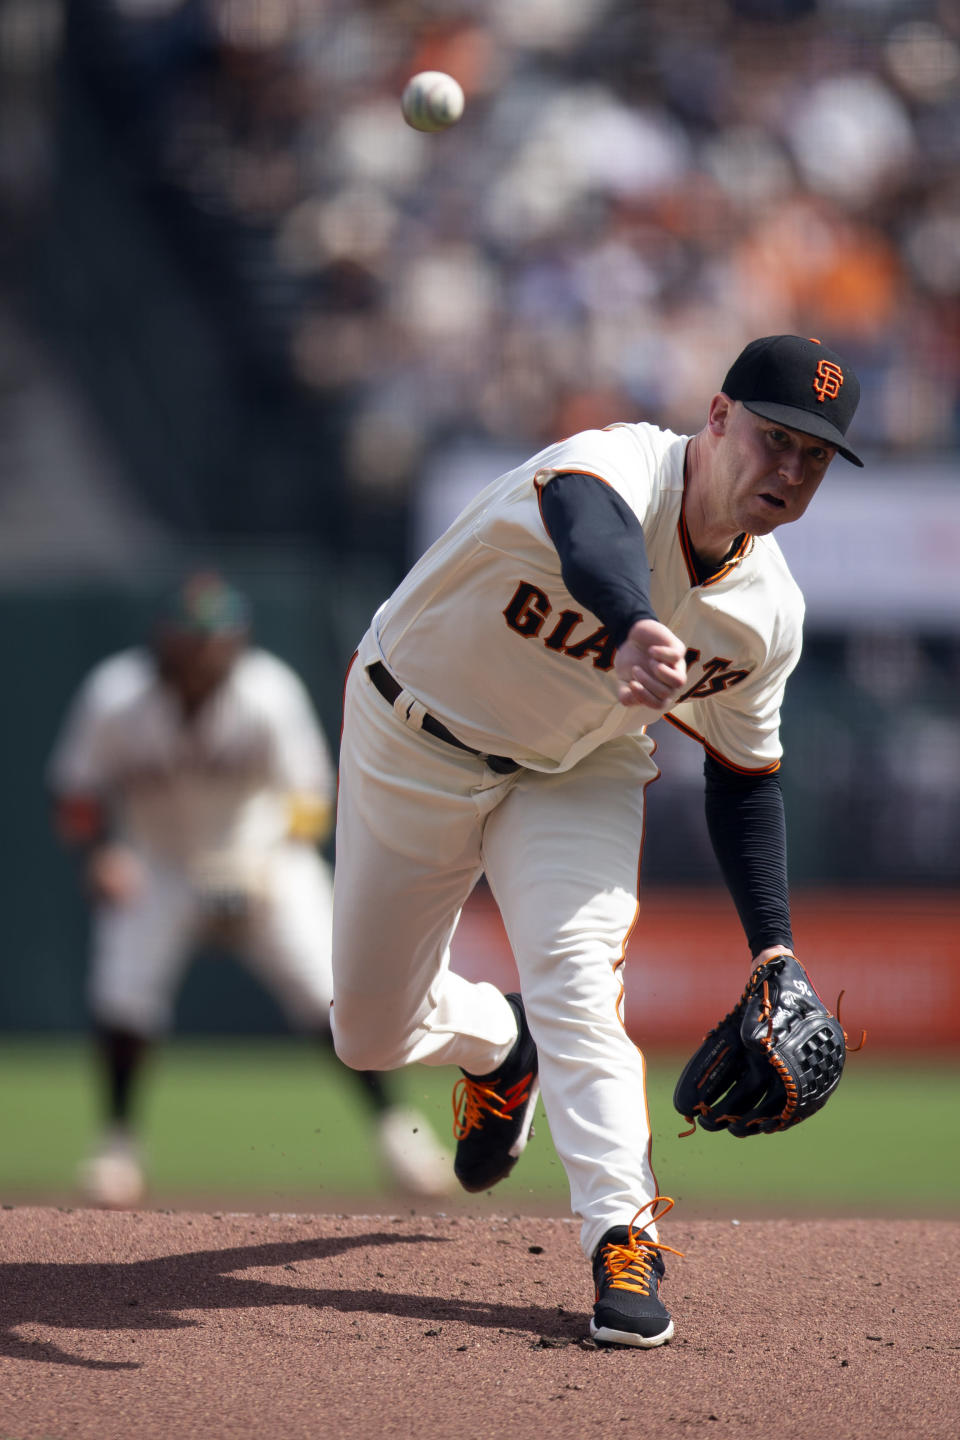 San Francisco Giants starting pitcher Anthony DeSclafani delivers against the Atlanta Braves during the first inning of a baseball game, Sunday, Sept. 19, 2021, in San Francisco. (AP Photo/D. Ross Cameron)